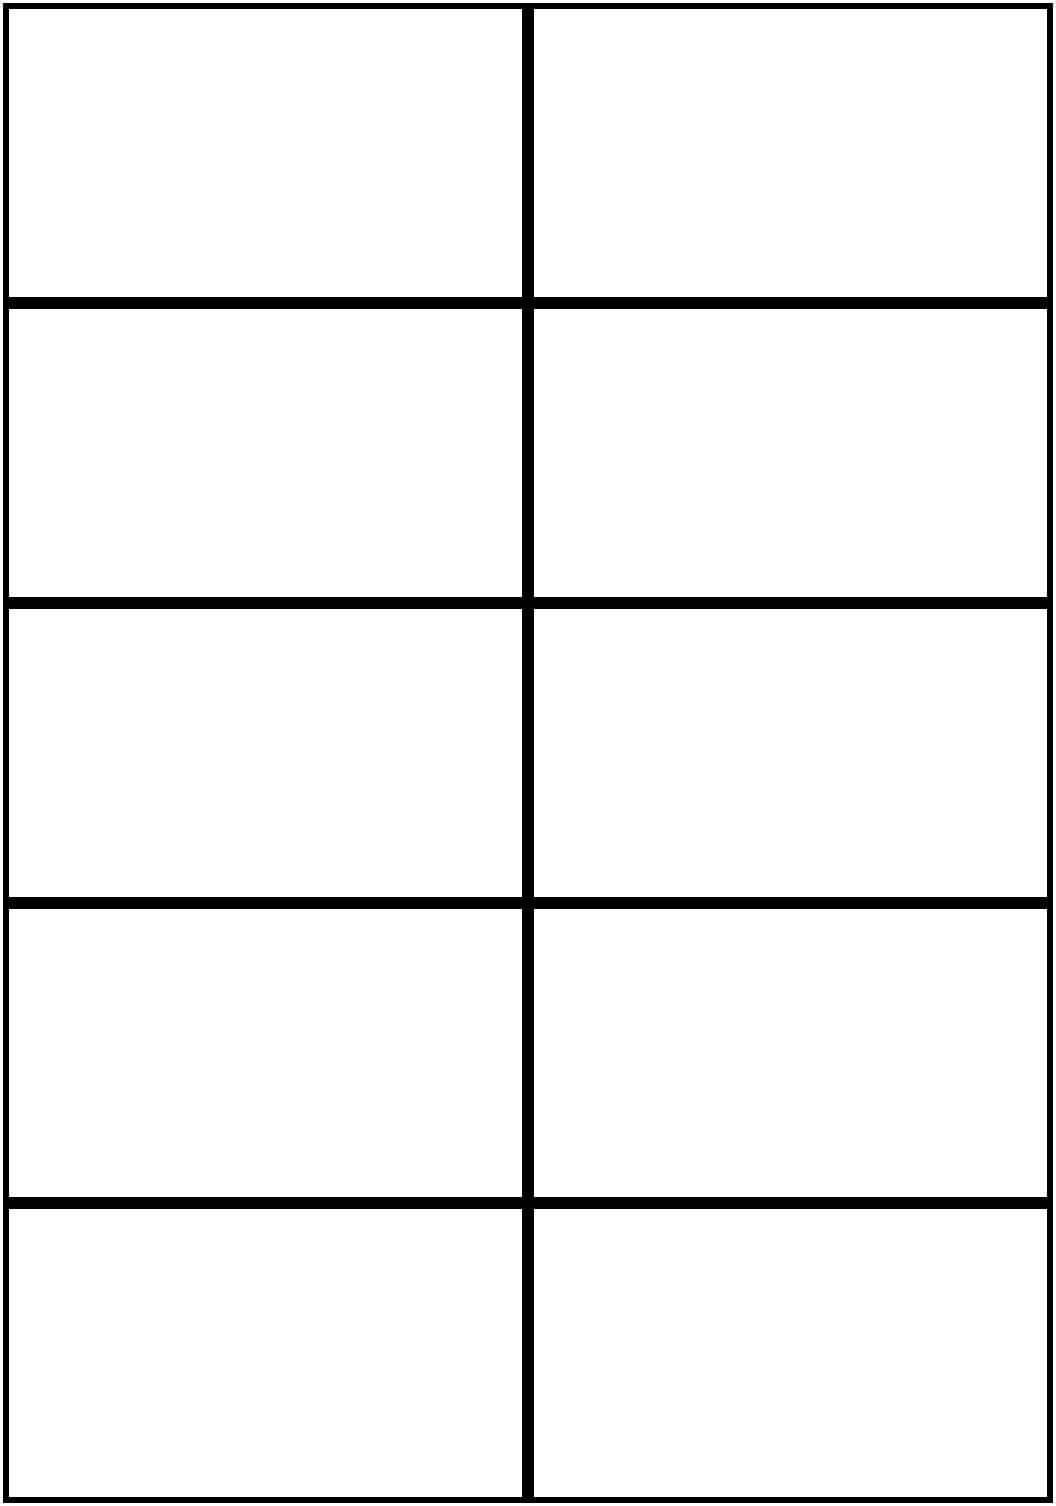 Free Printable Card Templates - Bolan.horizonconsulting.co Intended For Superhero Trading Card Template